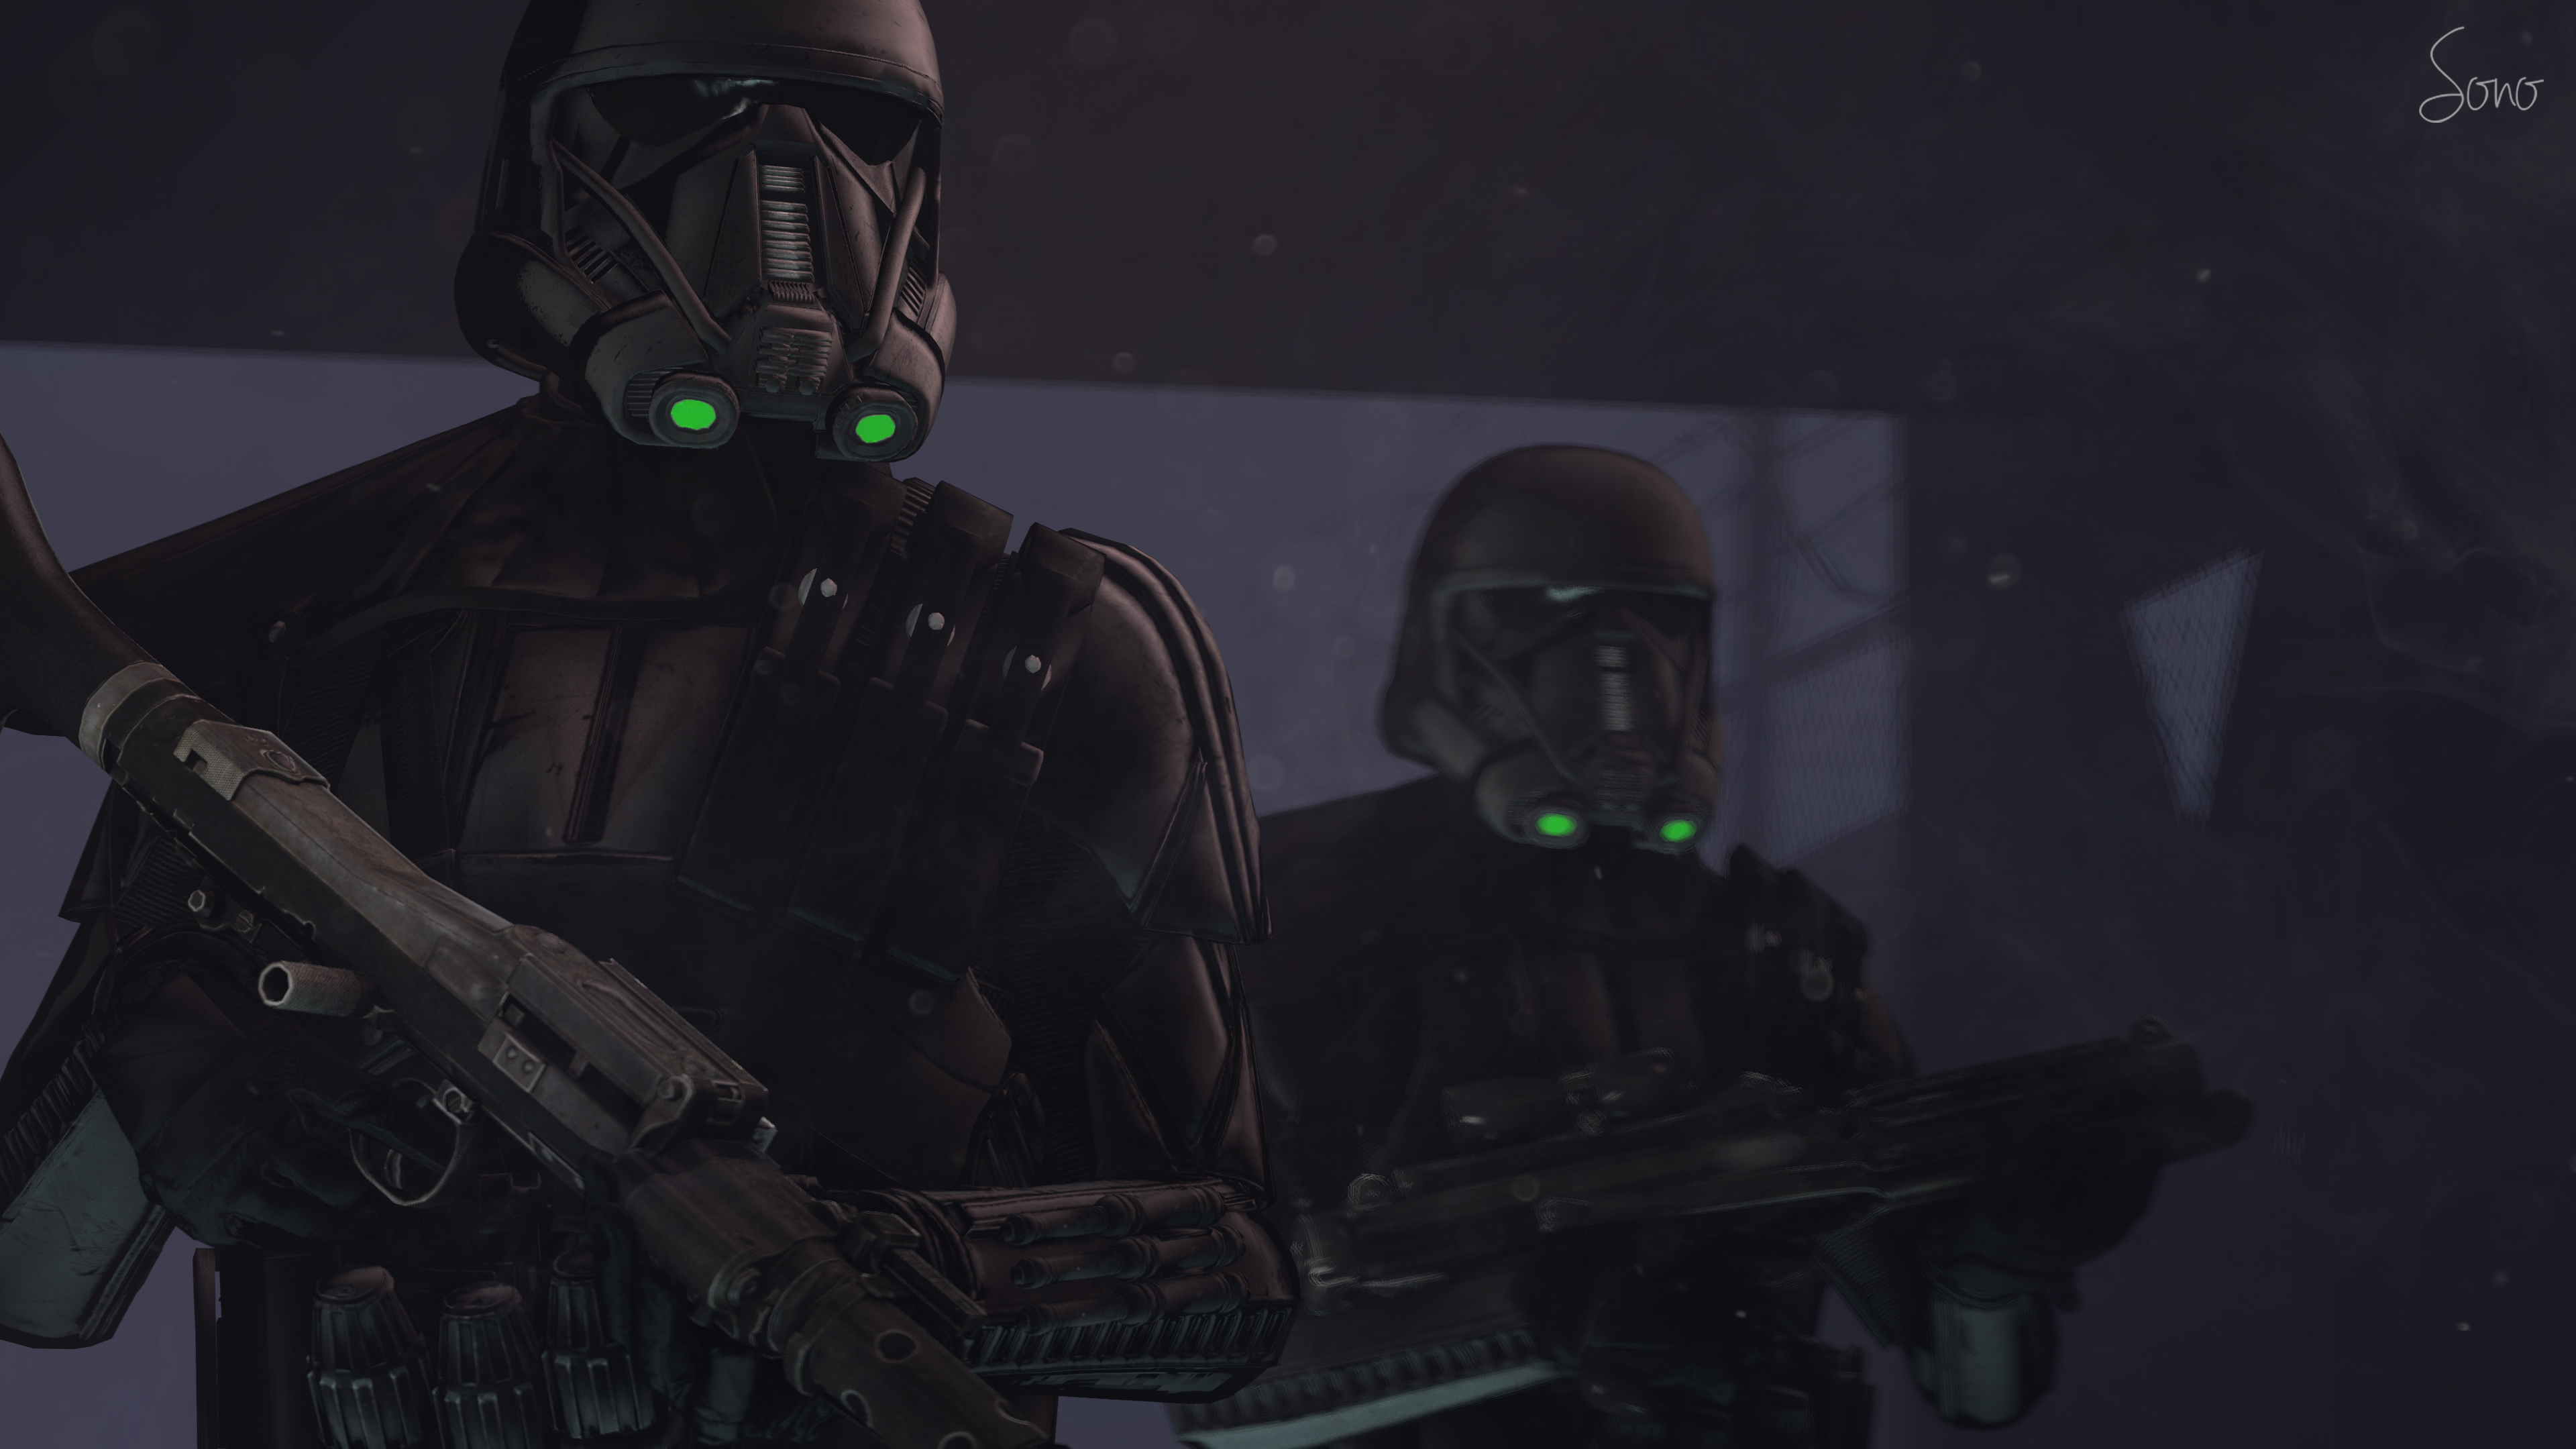 Death Trooper Battlefront For XNALara XPS By ShaunsArtHouse On